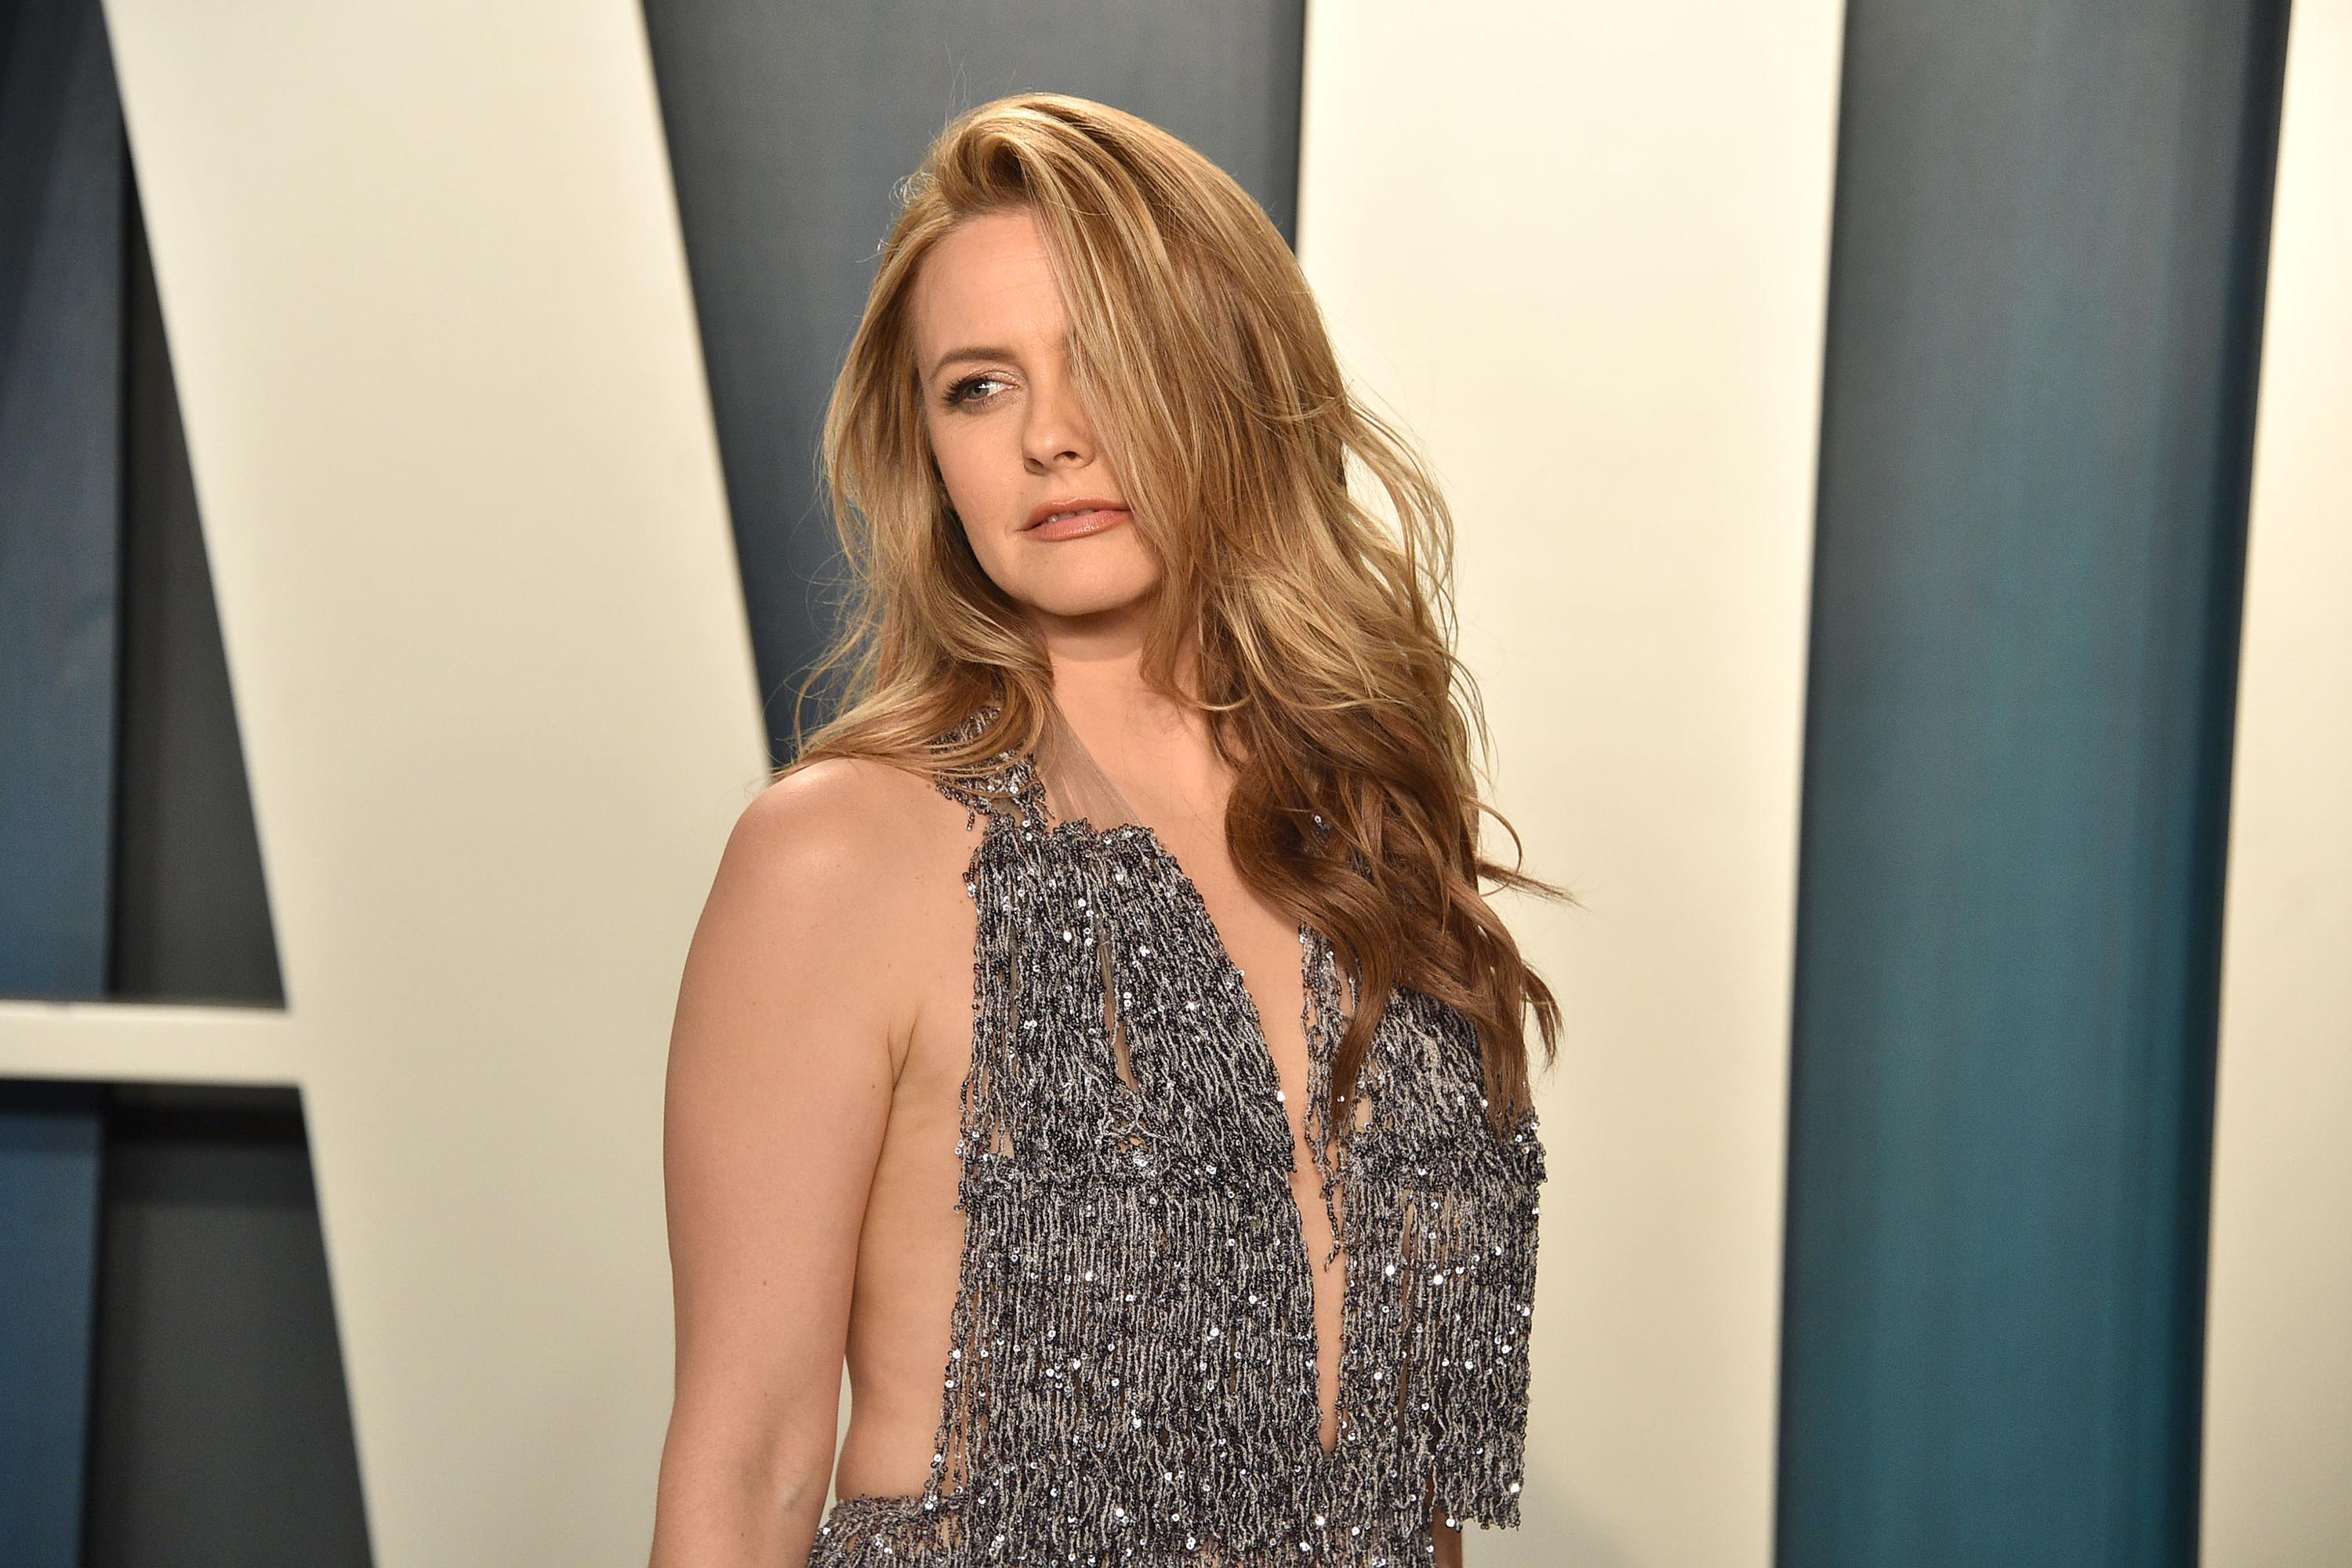 Alicia Silverstone lets us know we've been saying her name wrong this whole time